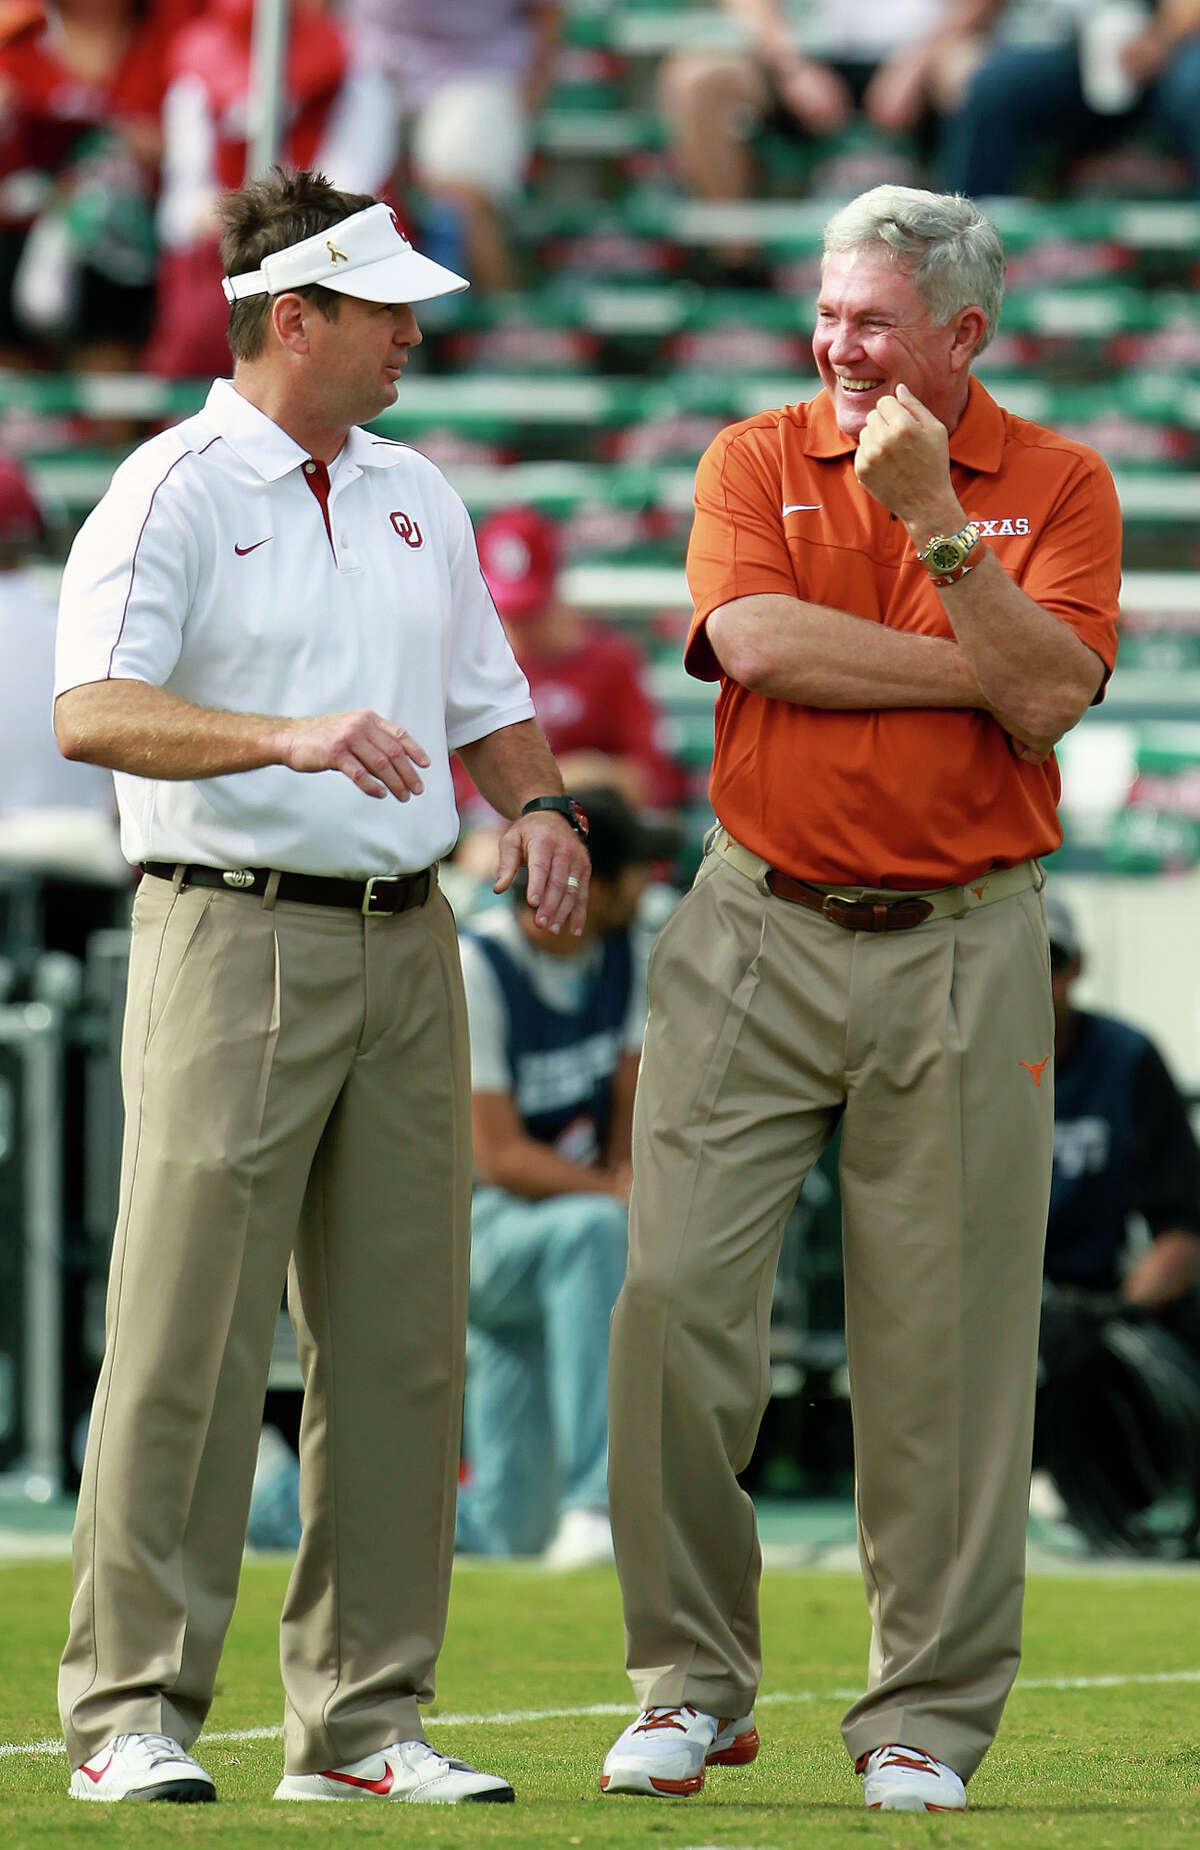 Bob Stoops and Mack Brown enjoy a pregame chat as UT Oklahoma in the Red River Rivalry at the Cotton Bowl on October 13, 2012.